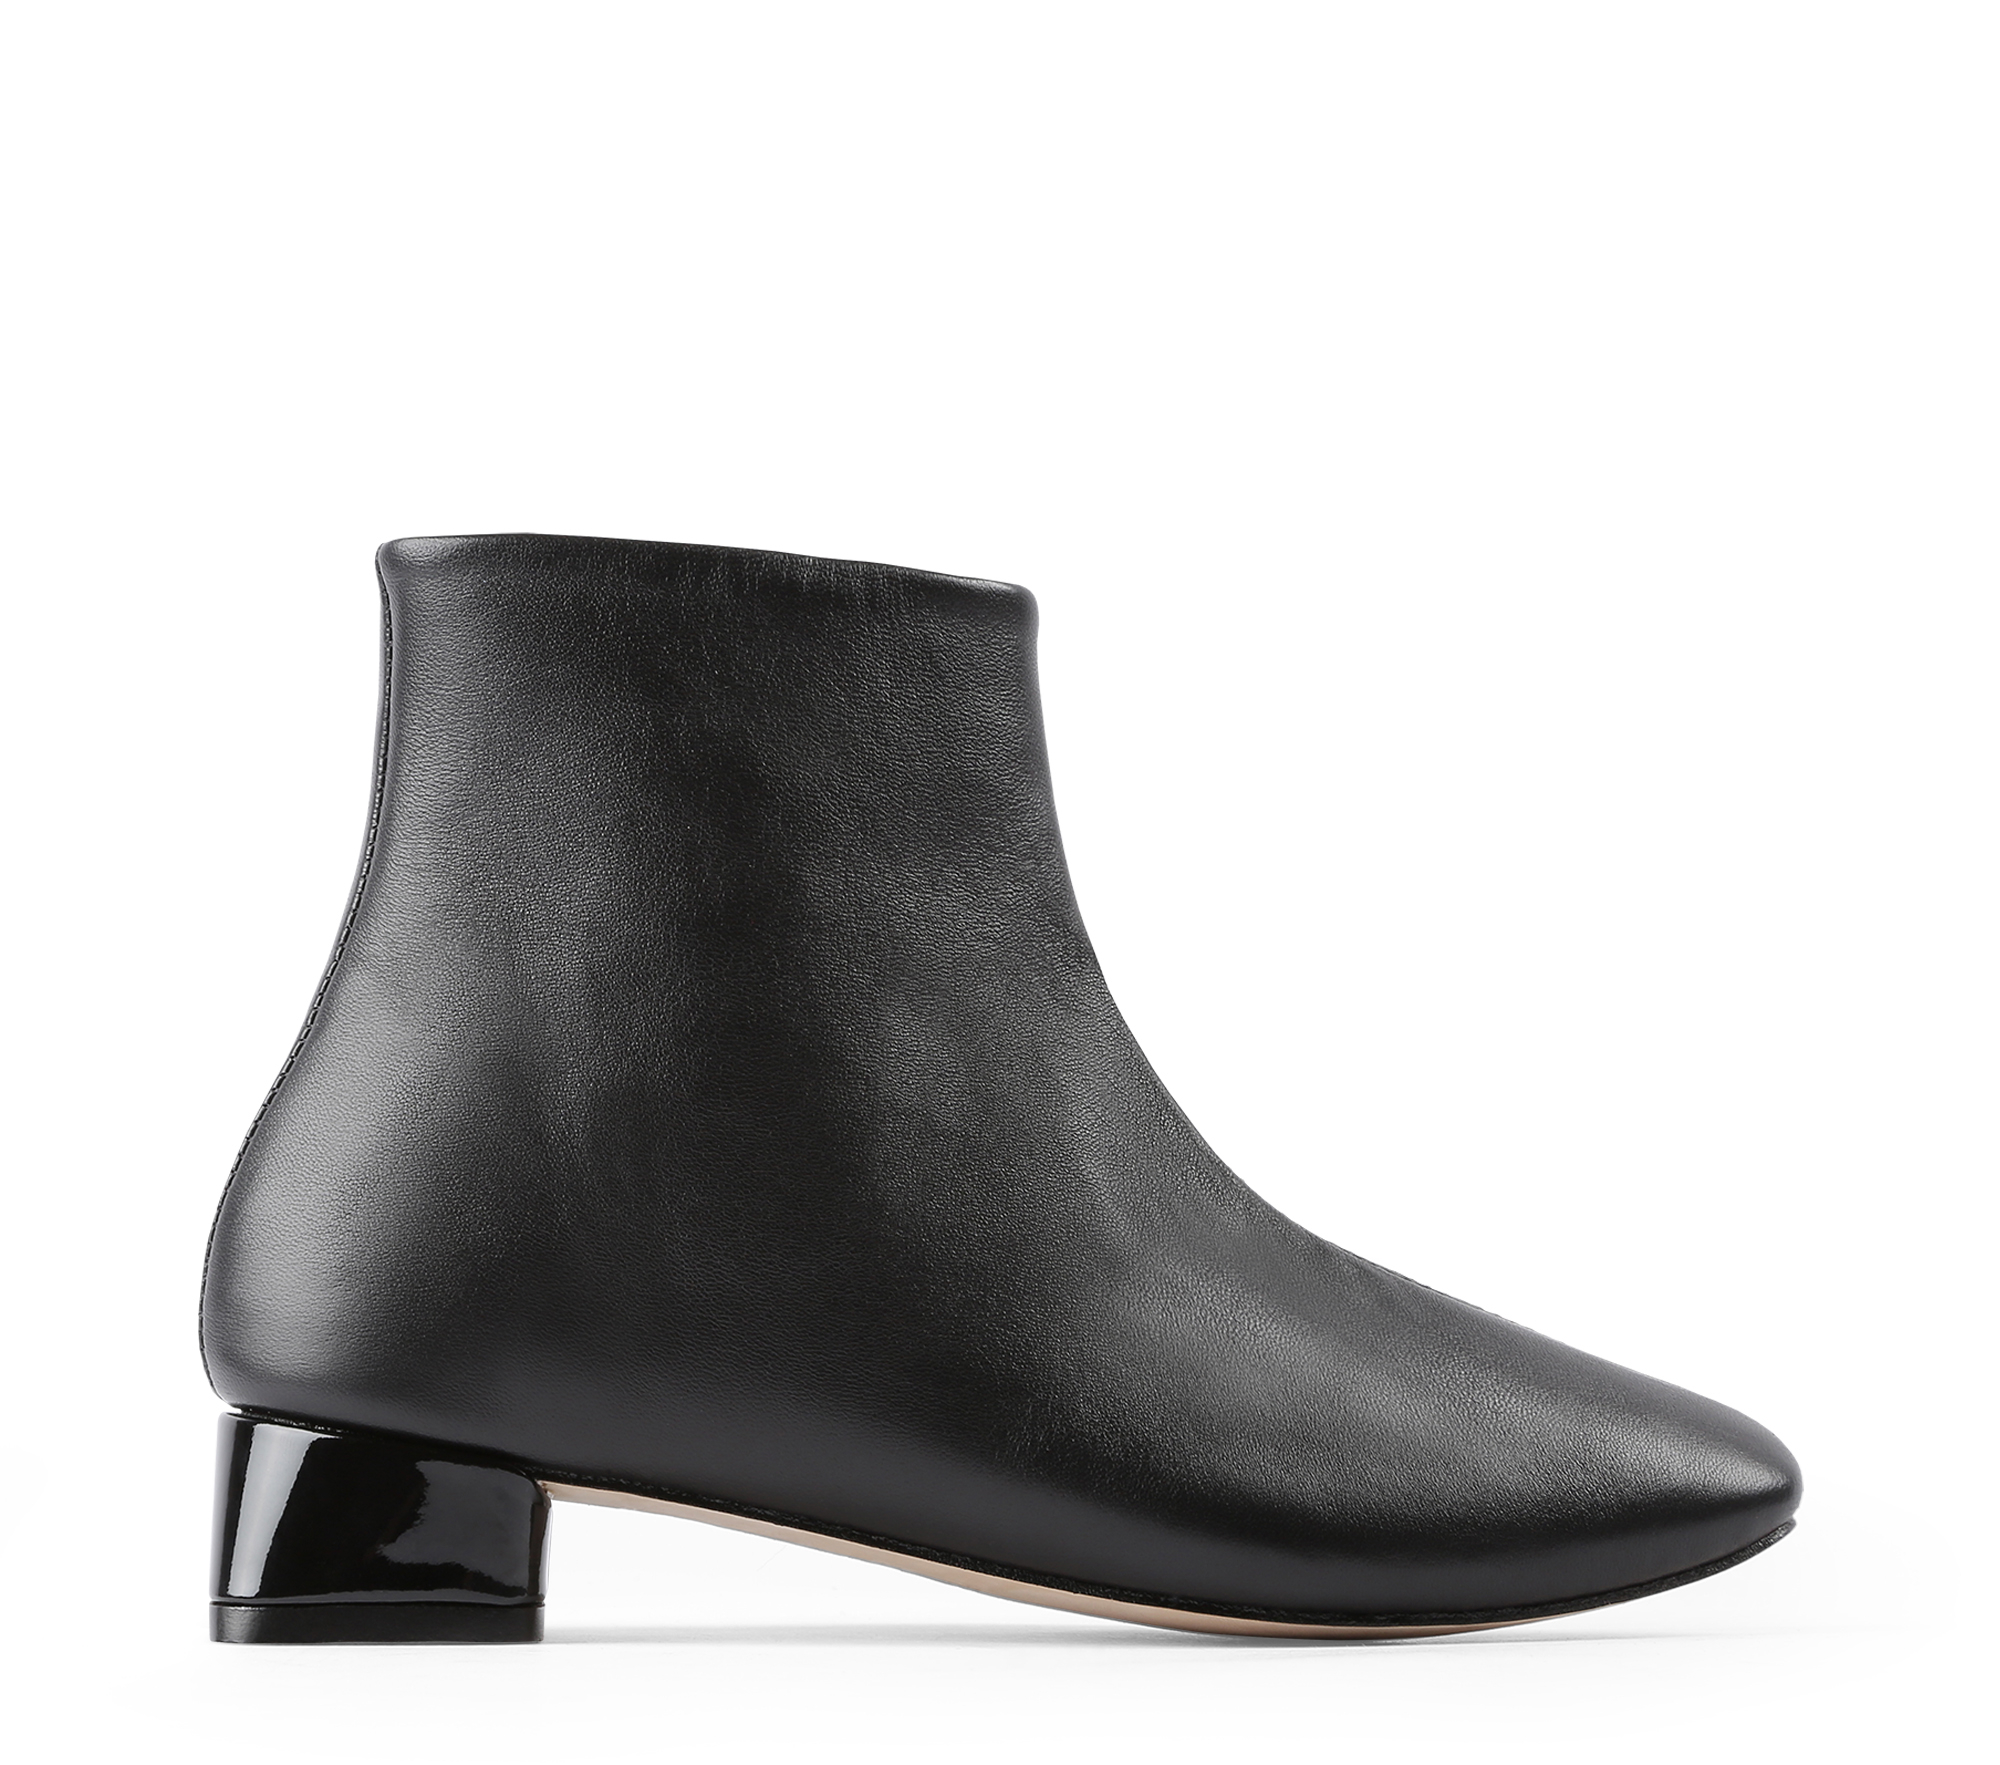 Maxou boots